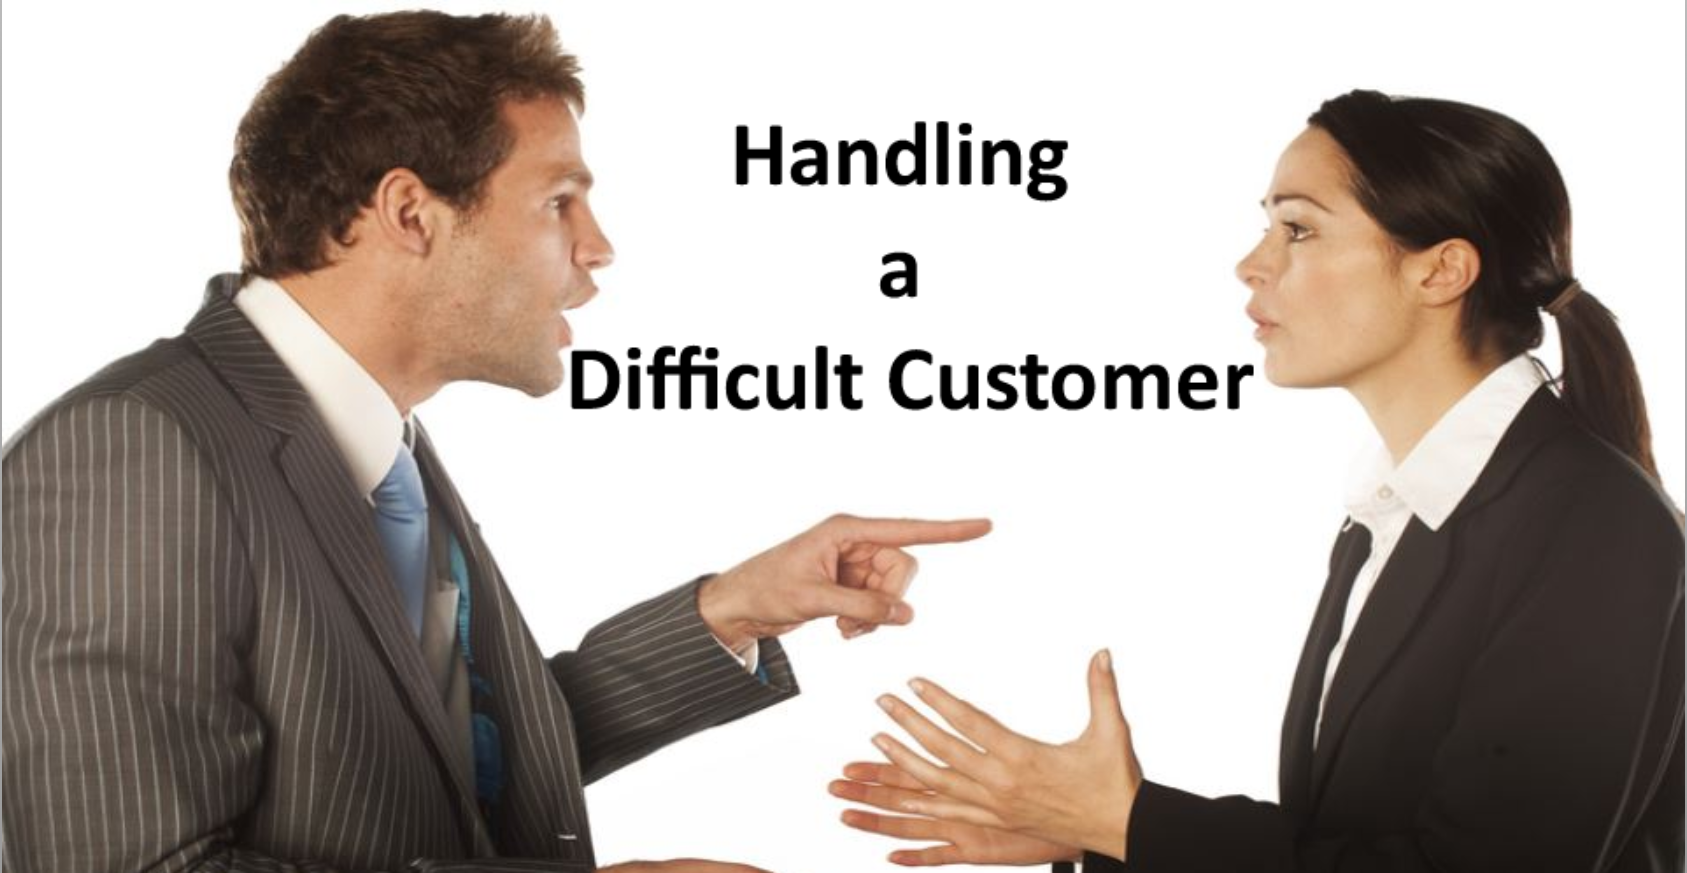 Handling a Difficult Customer